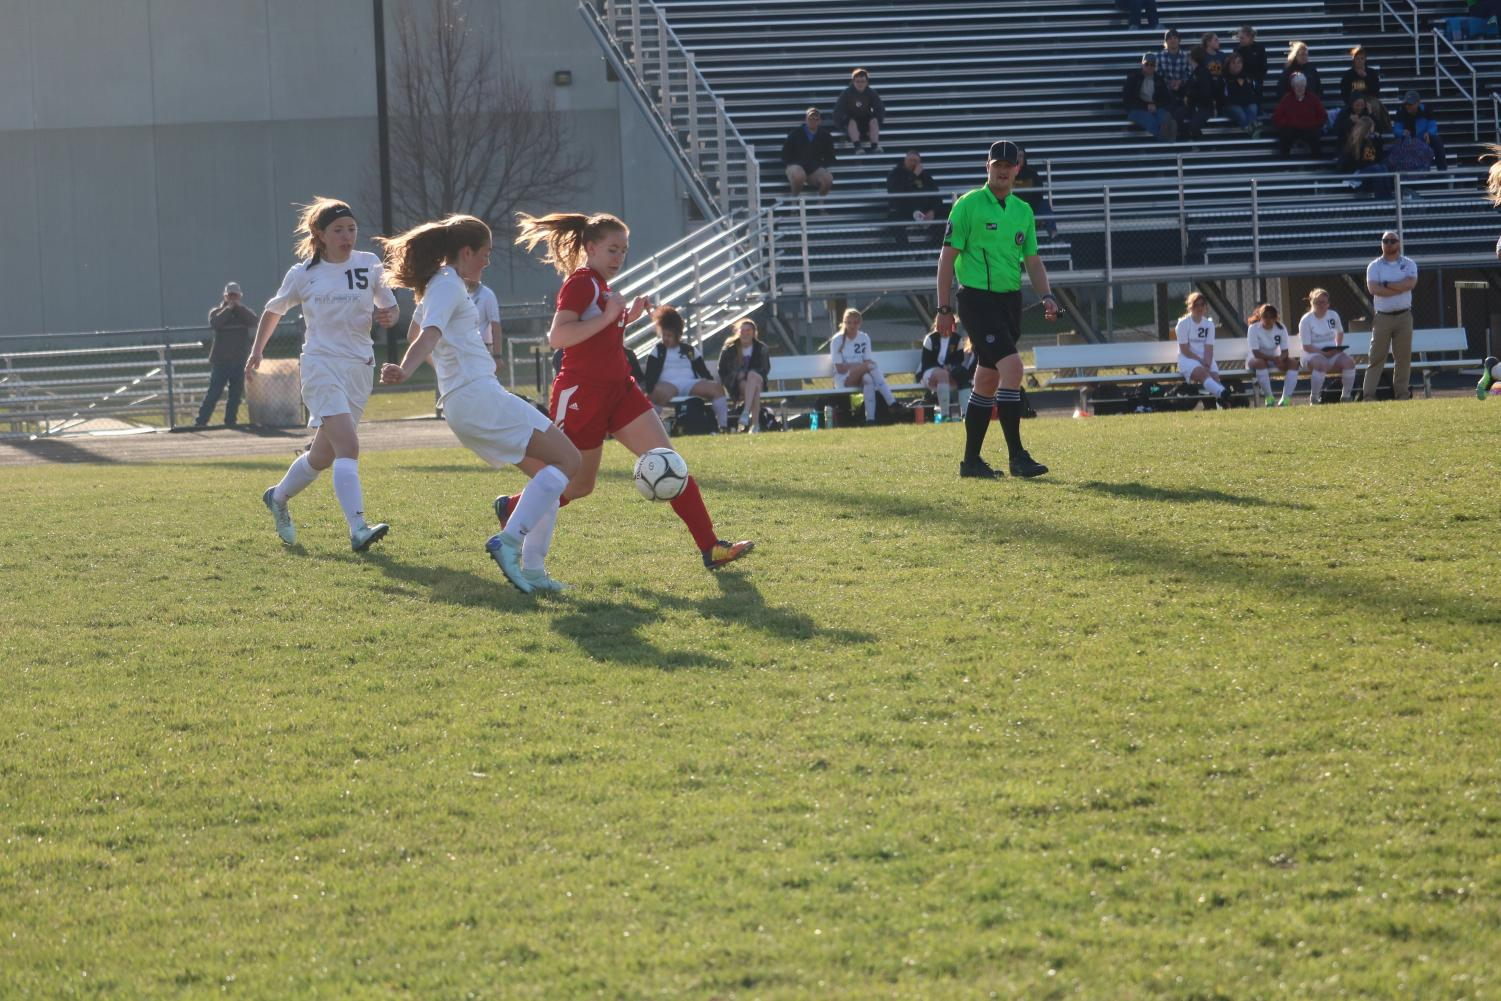 GOING FOR THE SAVE -- Sophomore Lauren Nicholas runs after the ball in the game against Harlan last year. Nicholas did not return this year.